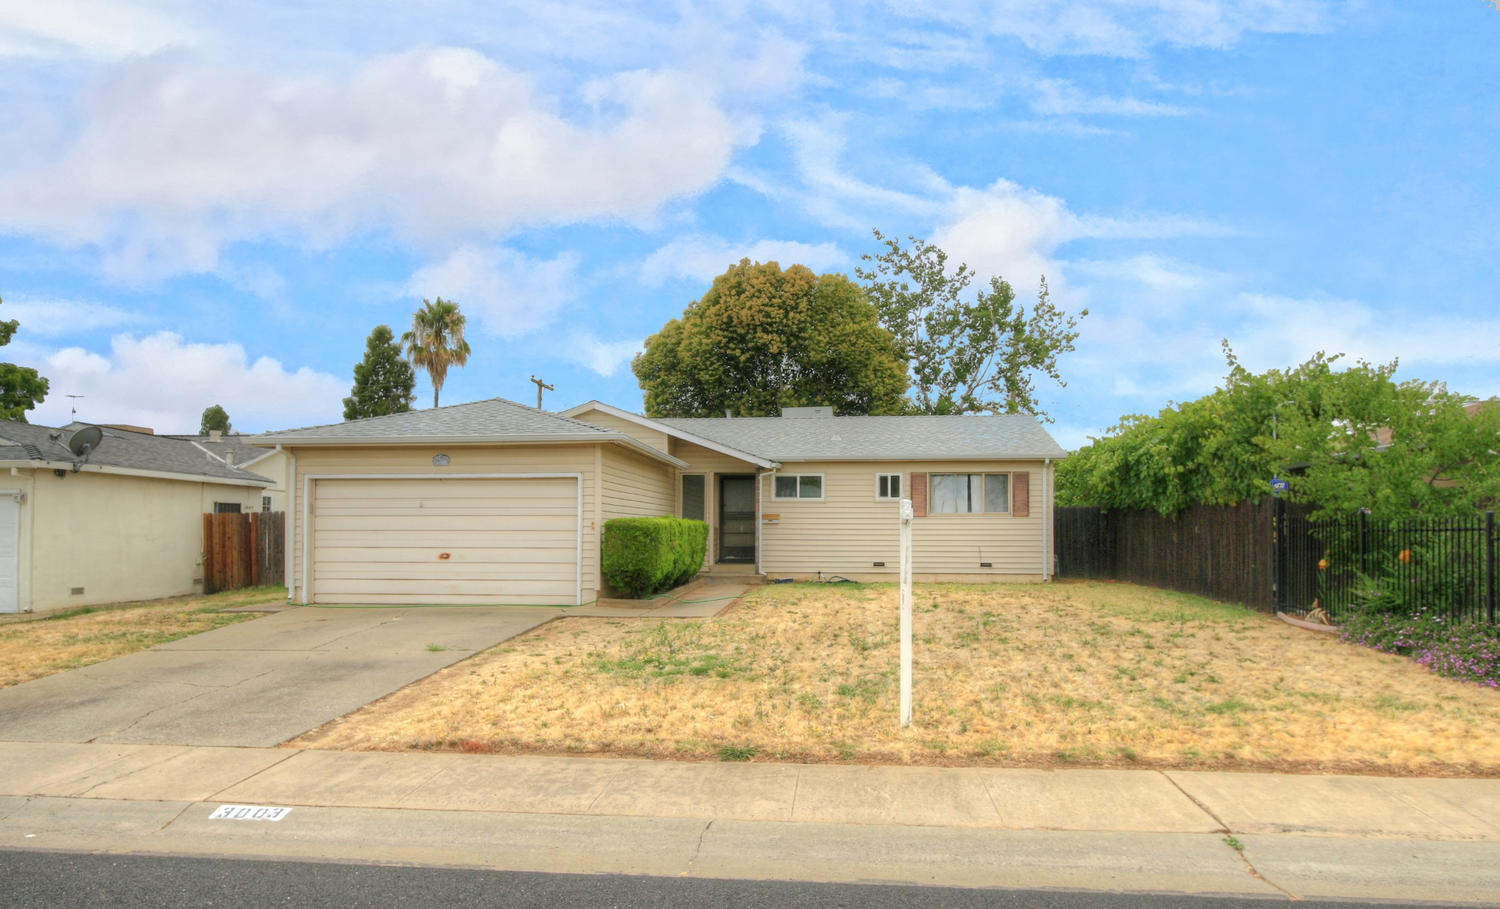 3003 Swansea Way Rancho Cordova Ca 95670 Sold